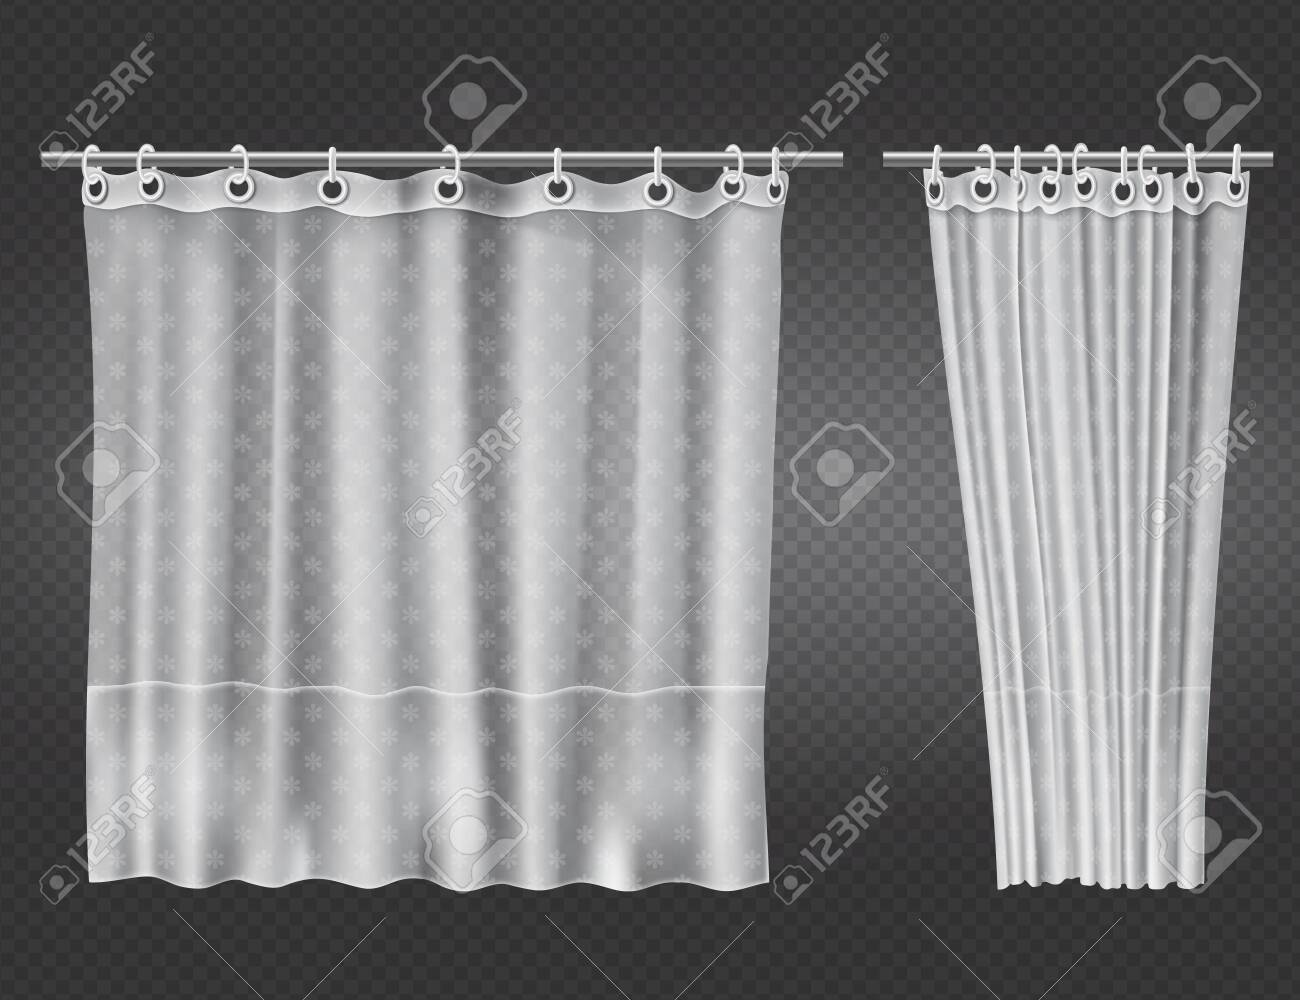 white clear shower curtains with flowers pattern isolated on